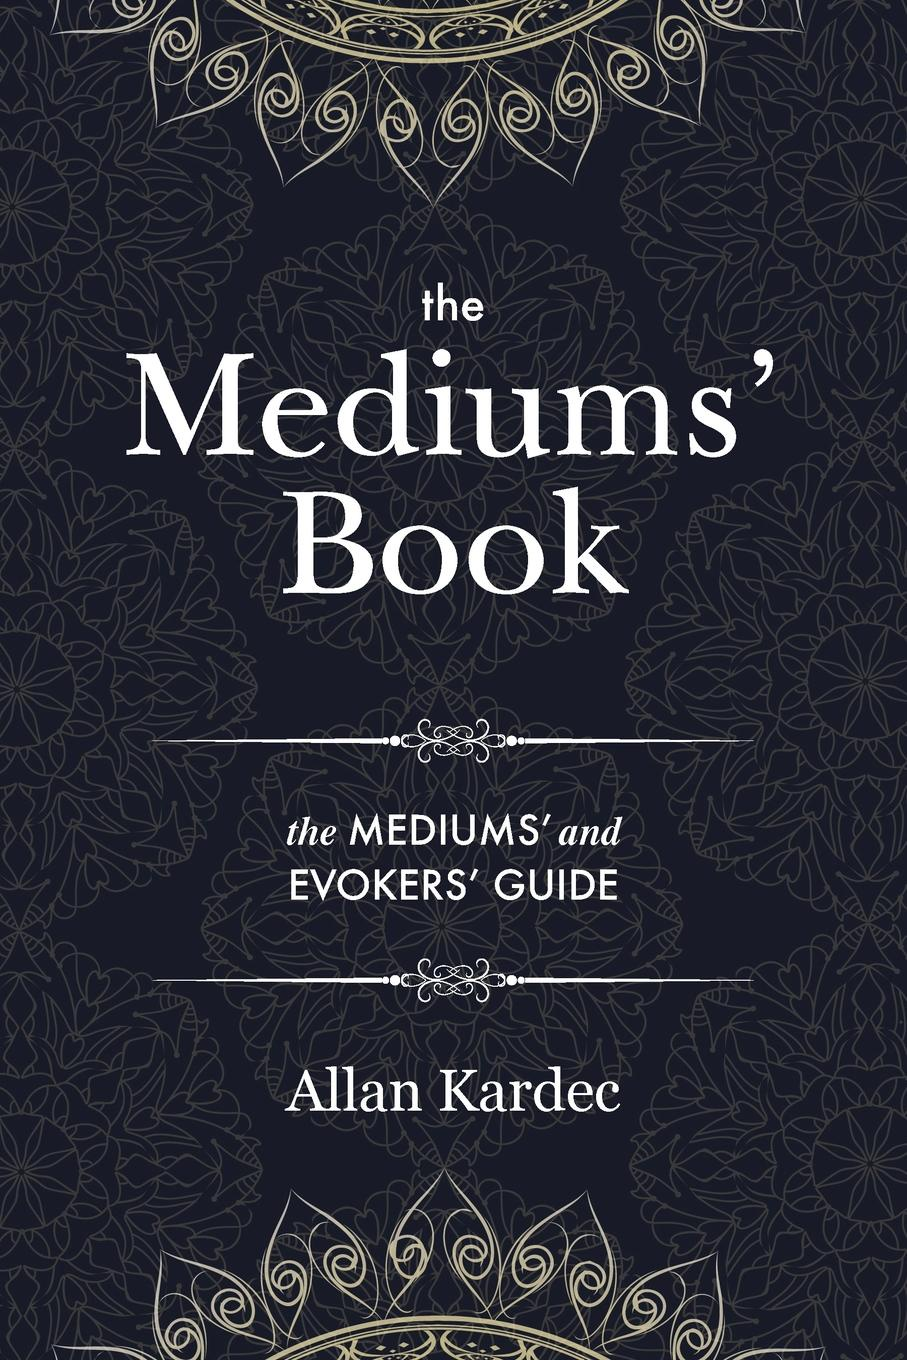 Allan Kardec, Anna Blackwell The Mediums. Book. containing Special Teachings from the Spirits on Manifestation, means to communicate with the Invisible World, Development of Mediumnity, Difficulties . Obstacles that can be encountered in Spiritism - with an alphabetical index kardec allan vaimude raamat